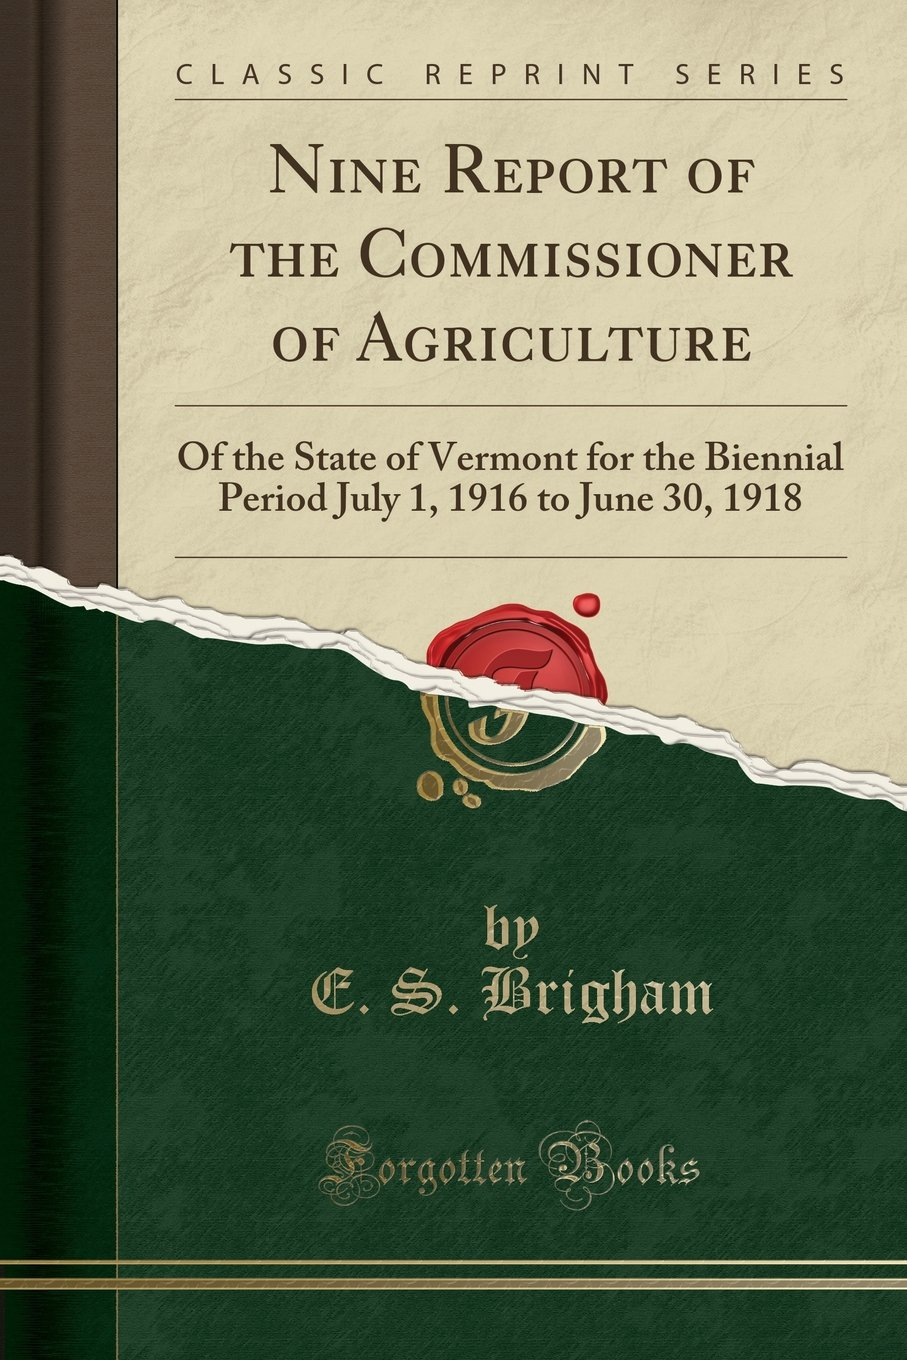 Download Nine Report of the Commissioner of Agriculture: Of the State of Vermont for the Biennial Period July 1, 1916 to June 30, 1918 (Classic Reprint) pdf epub